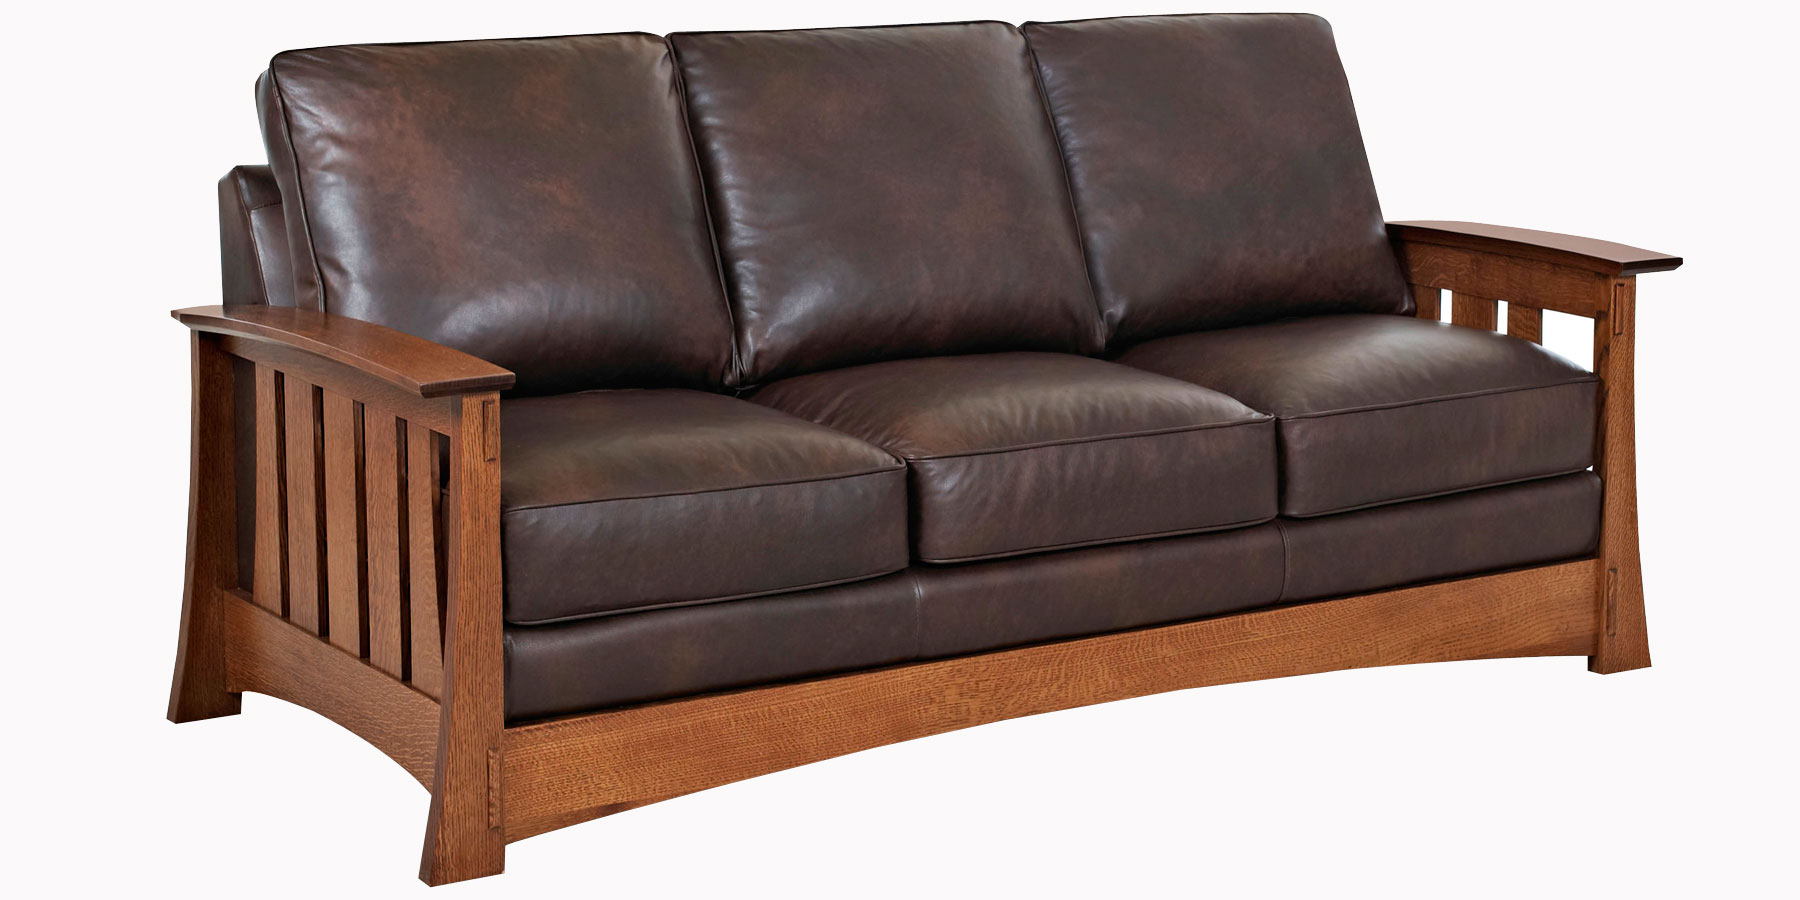 Mission Style Leather Pillow Back Living Room Seating | Club Furniture